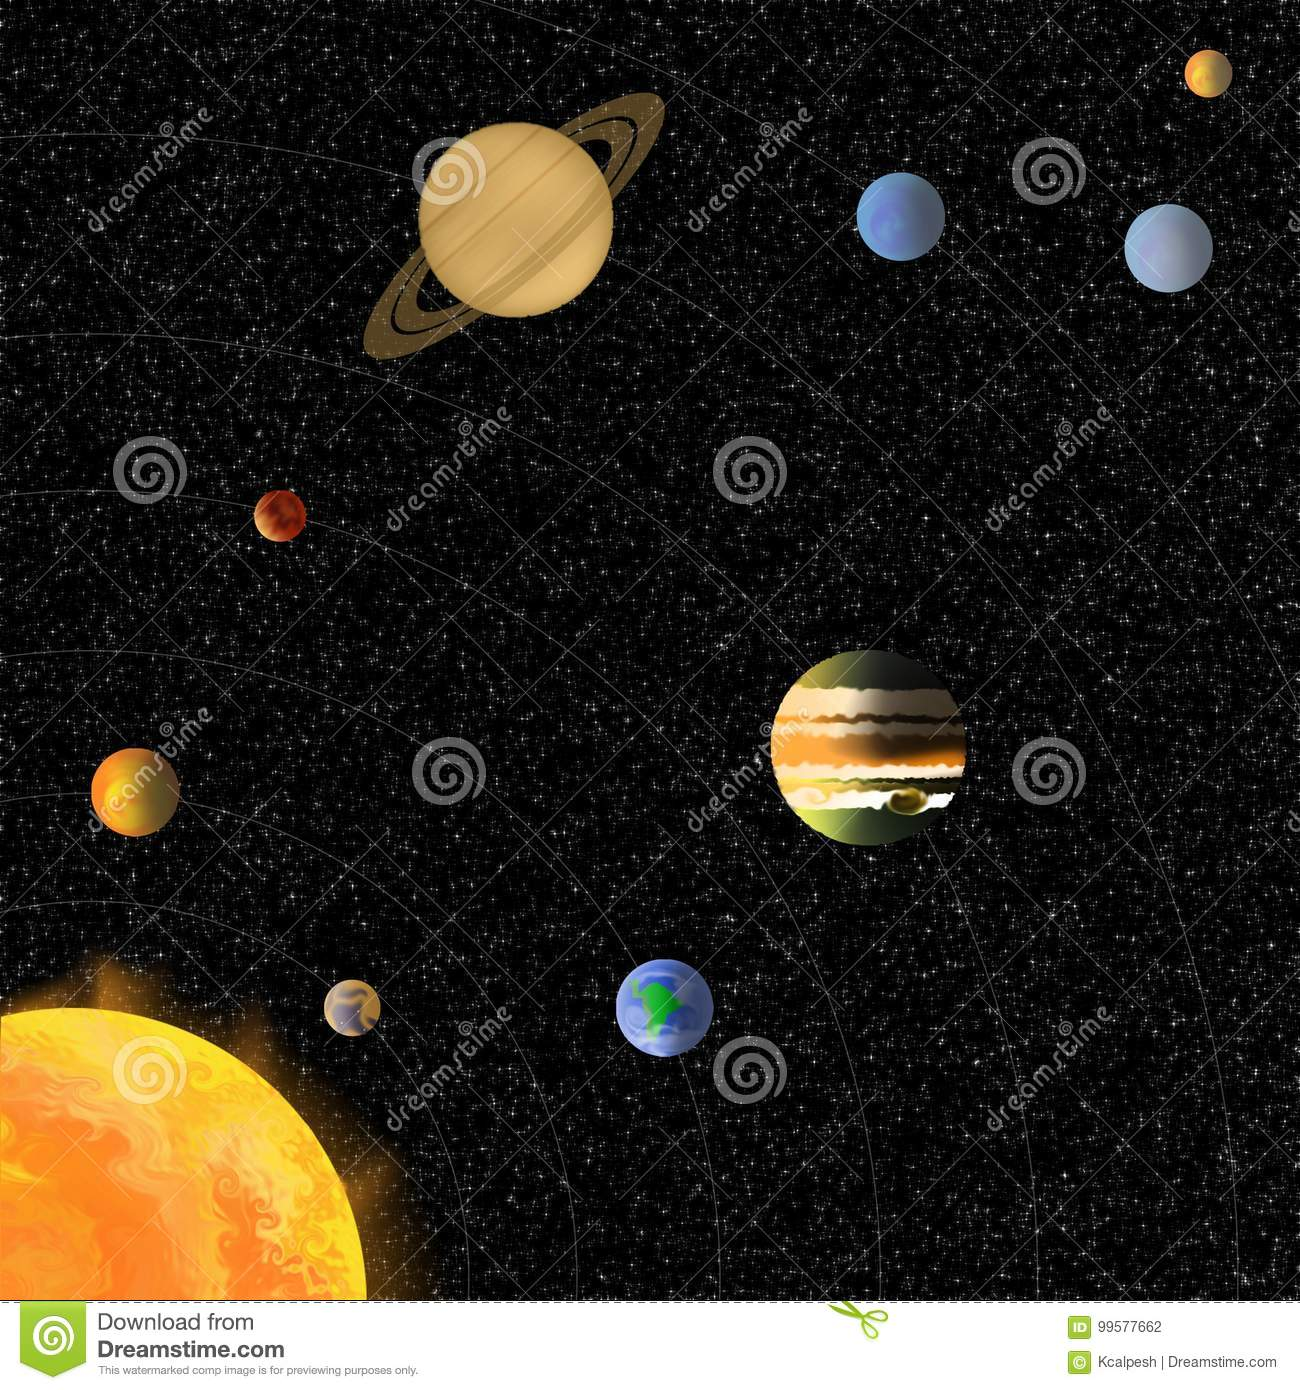 solar system without names of planets stock illustration